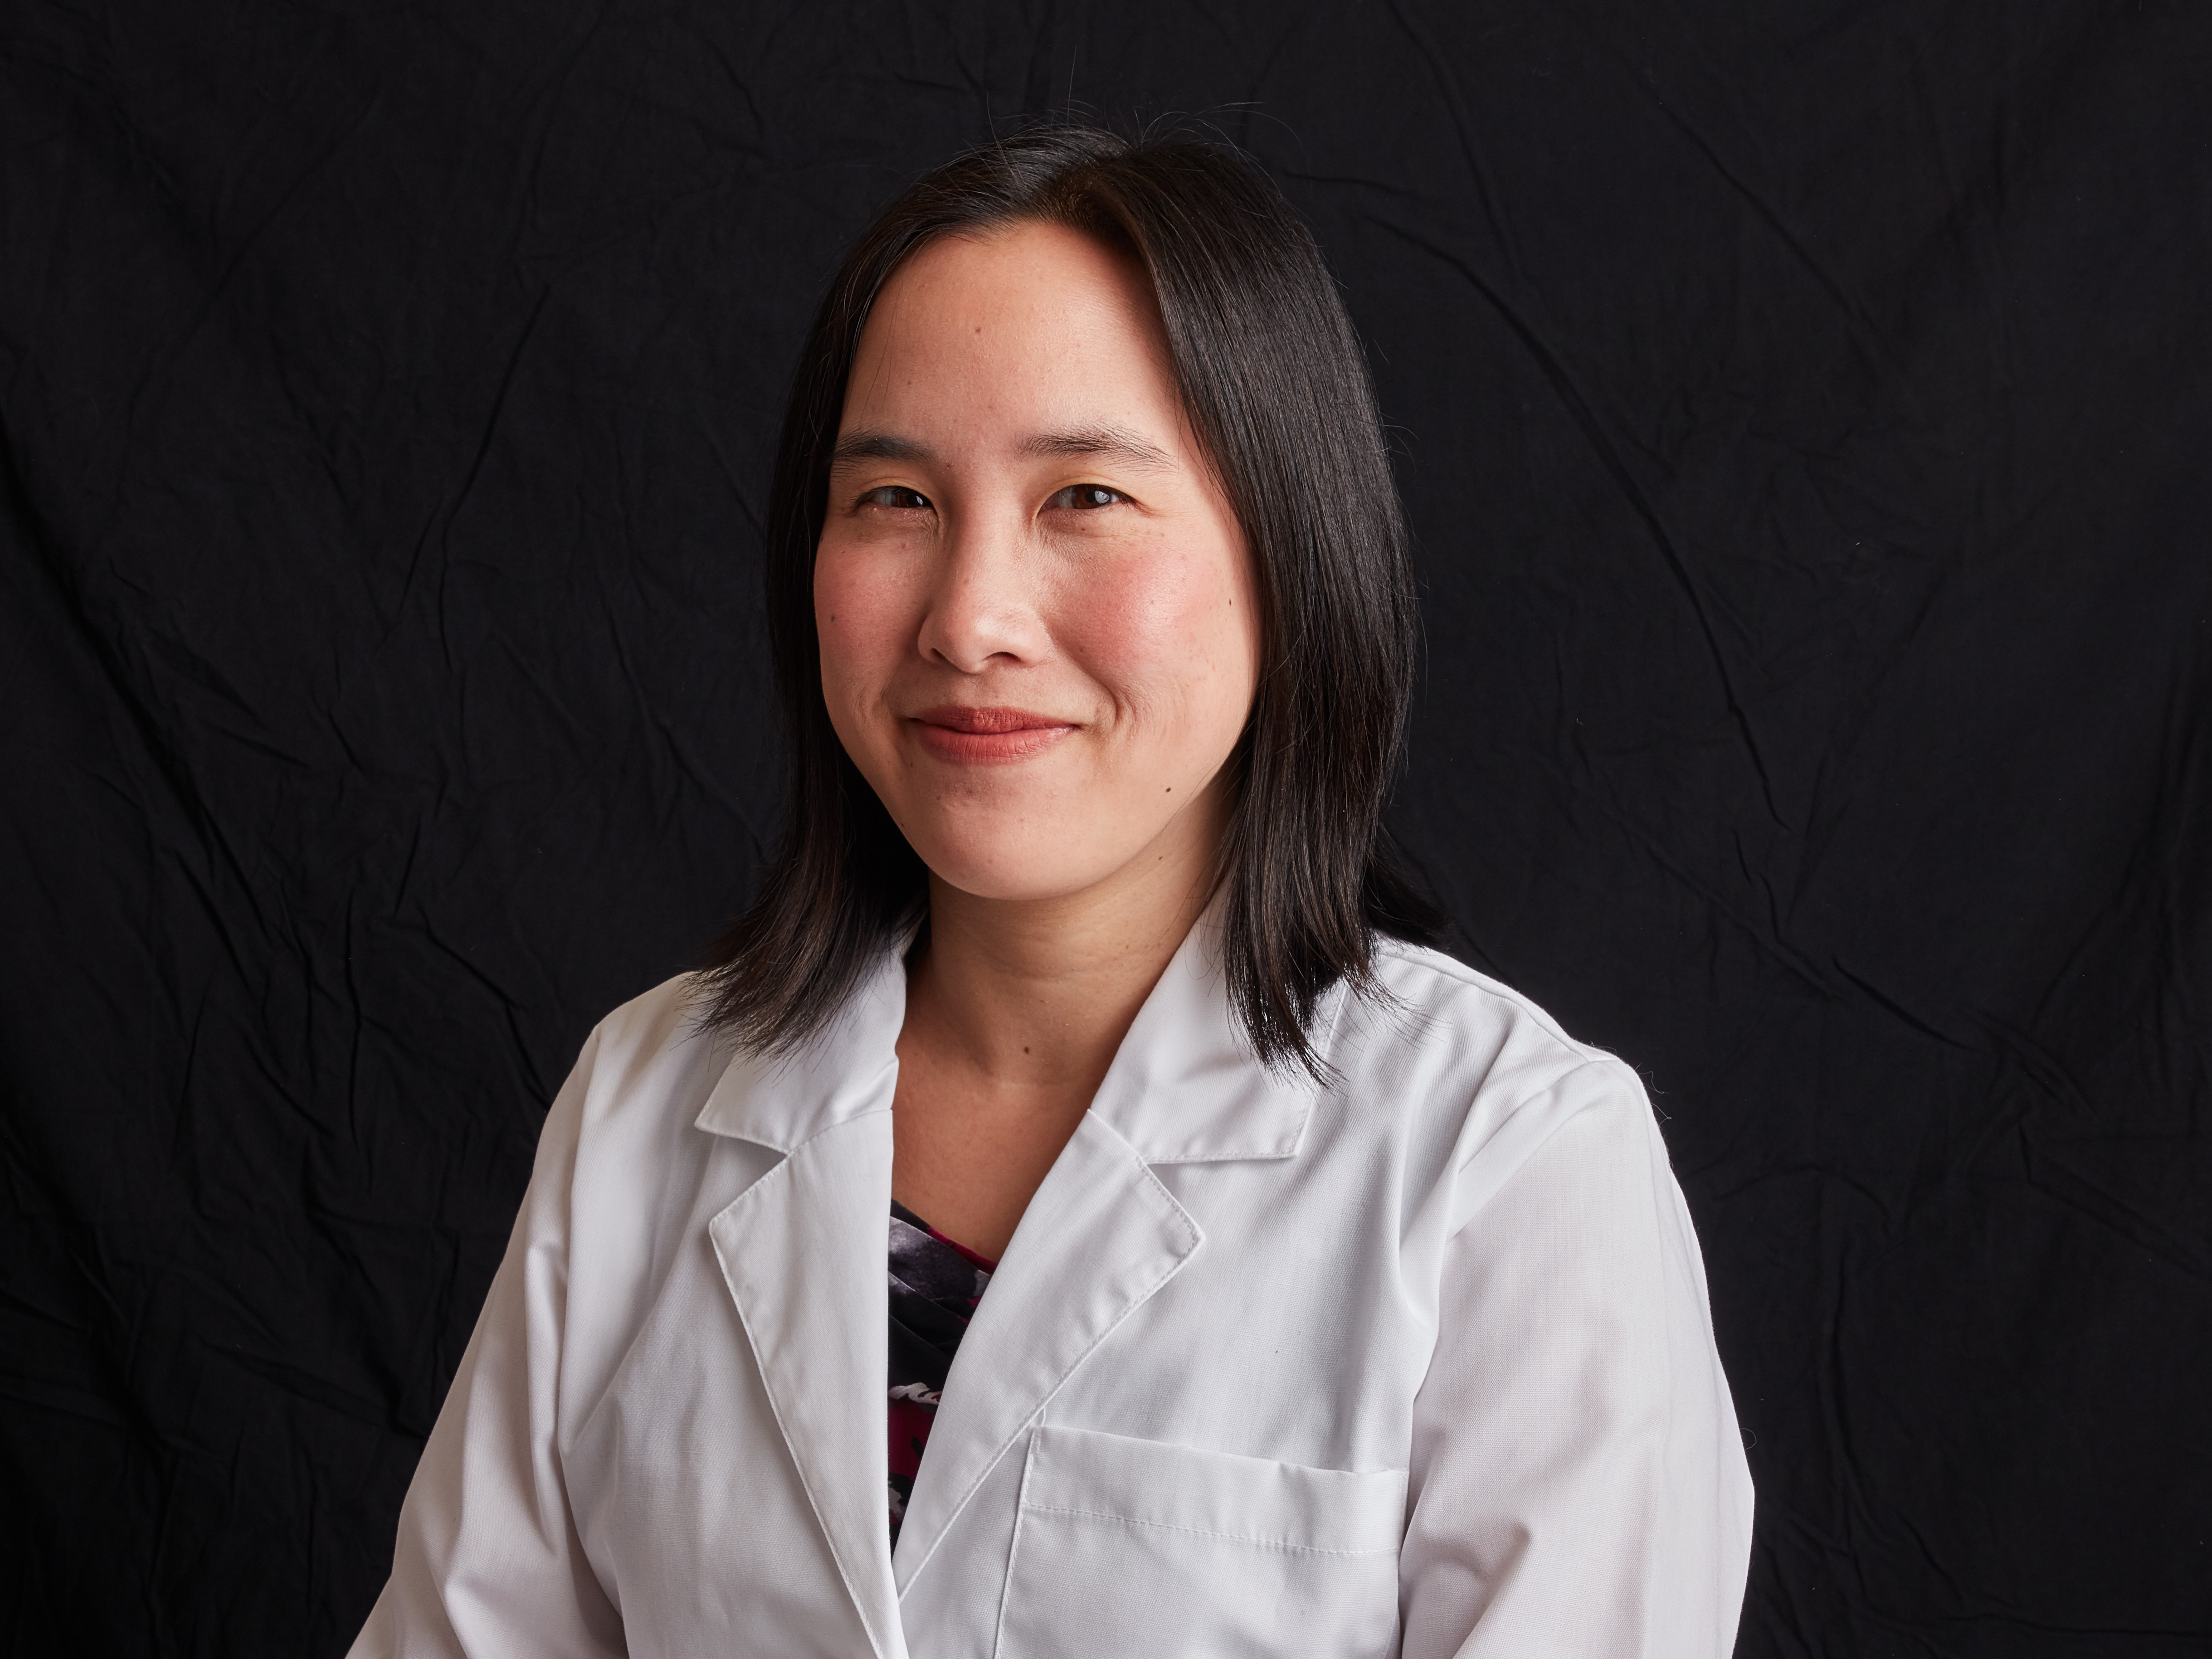 Dr. Courtney Wong